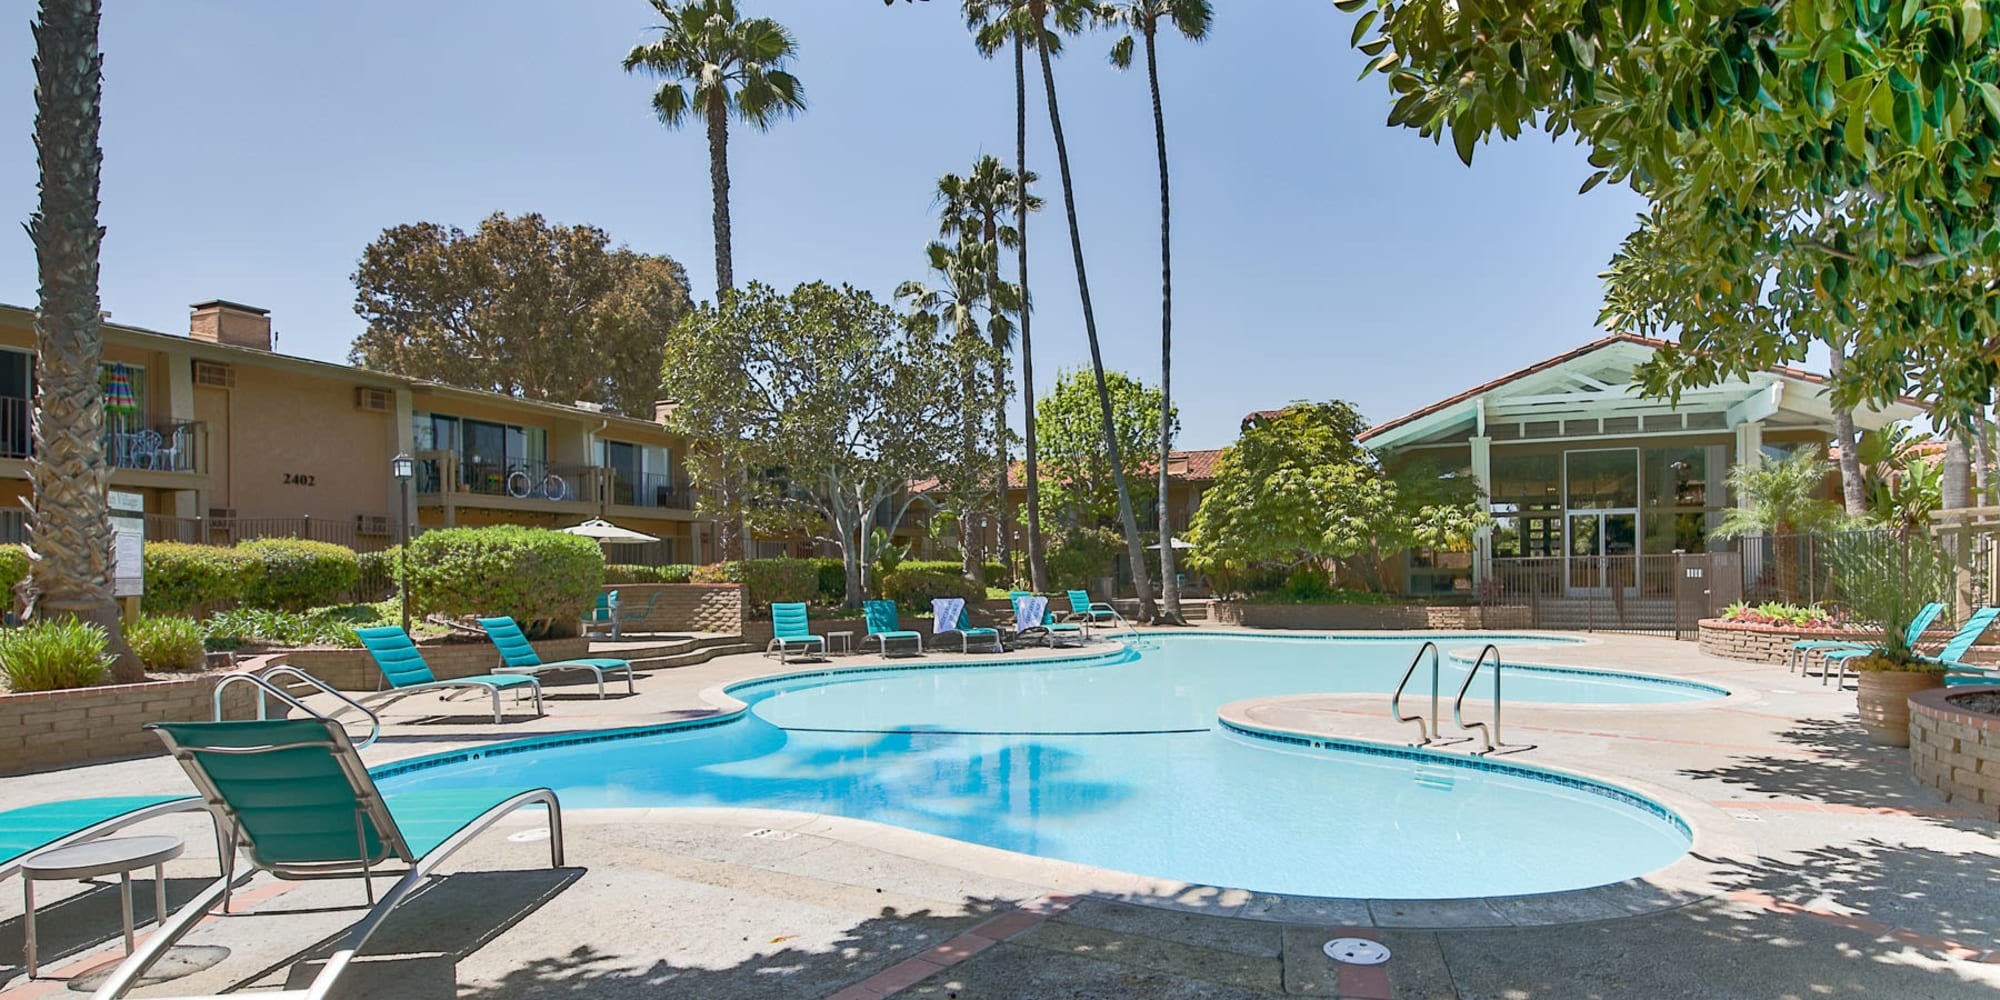 Palm trees and lounge chairs around the swimming pool at Mediterranean Village Apartments in Costa Mesa, California